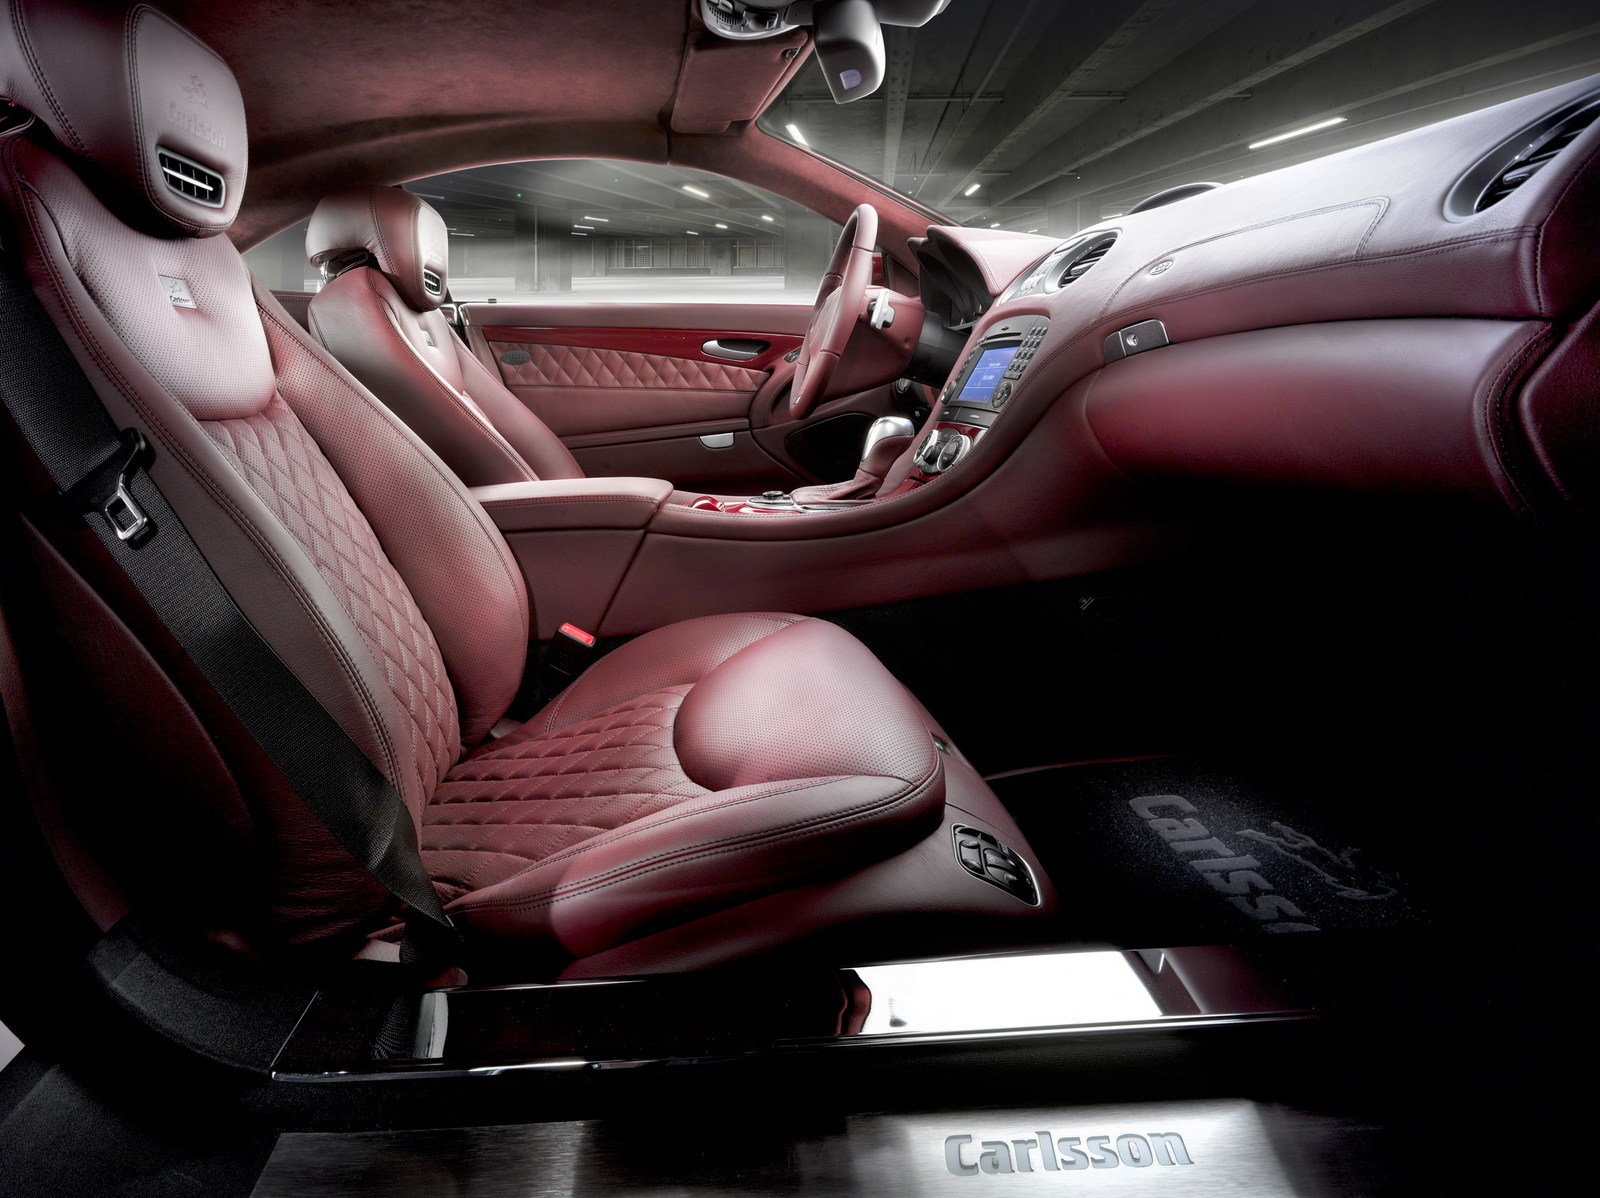 http://pictures.topspeed.com/IMG/crop/201206/carlsson-c25-china-l_1600x0w.jpg